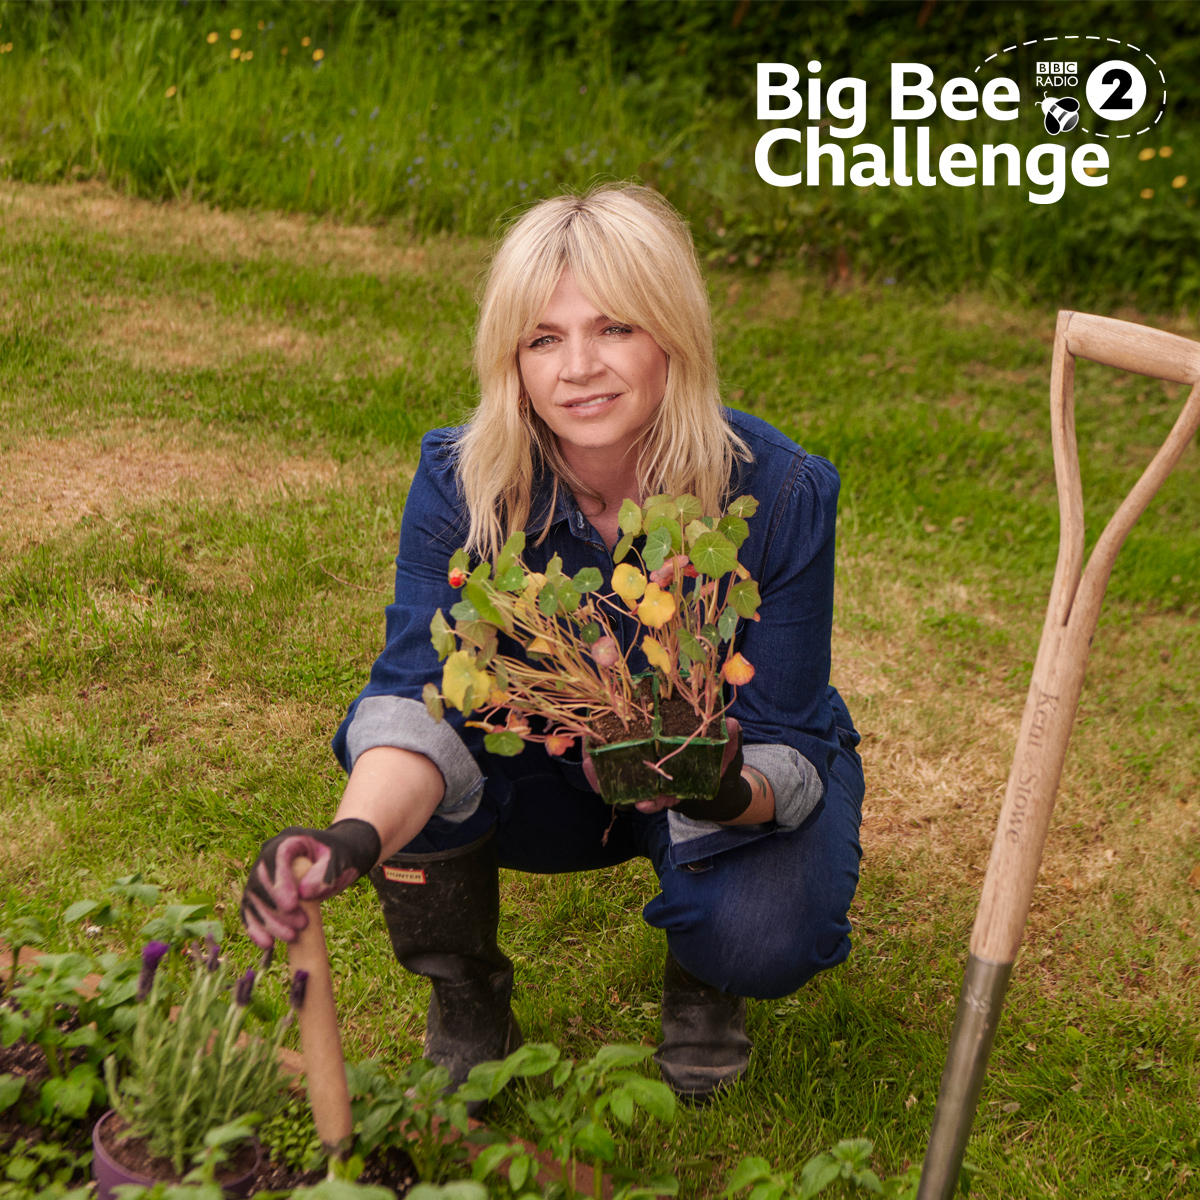 We've partnered with @BBCRadio2 to launch the #R2BigBeeChallenge, a brand new initiative to shine a light on the plight of our bee population 🐝  With wild bees and other wild insects in decline, we all need to do everything we can to help our precious pollinators. https://t.co/CEk2uZNf4l